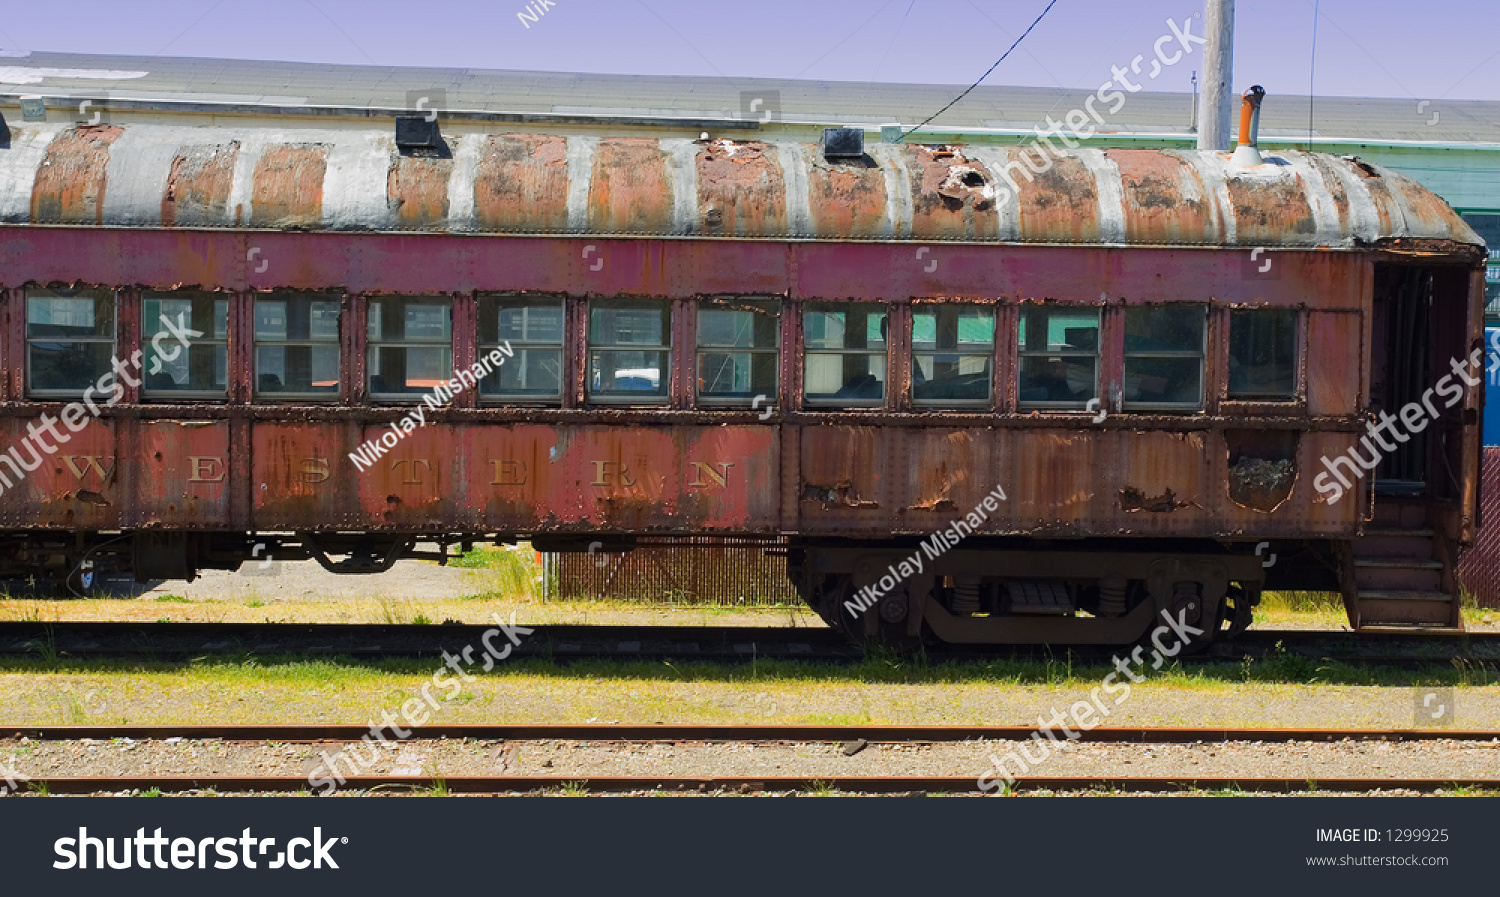 Wooden Rail Cars ~ Images about rusting train cars on pinterest rail